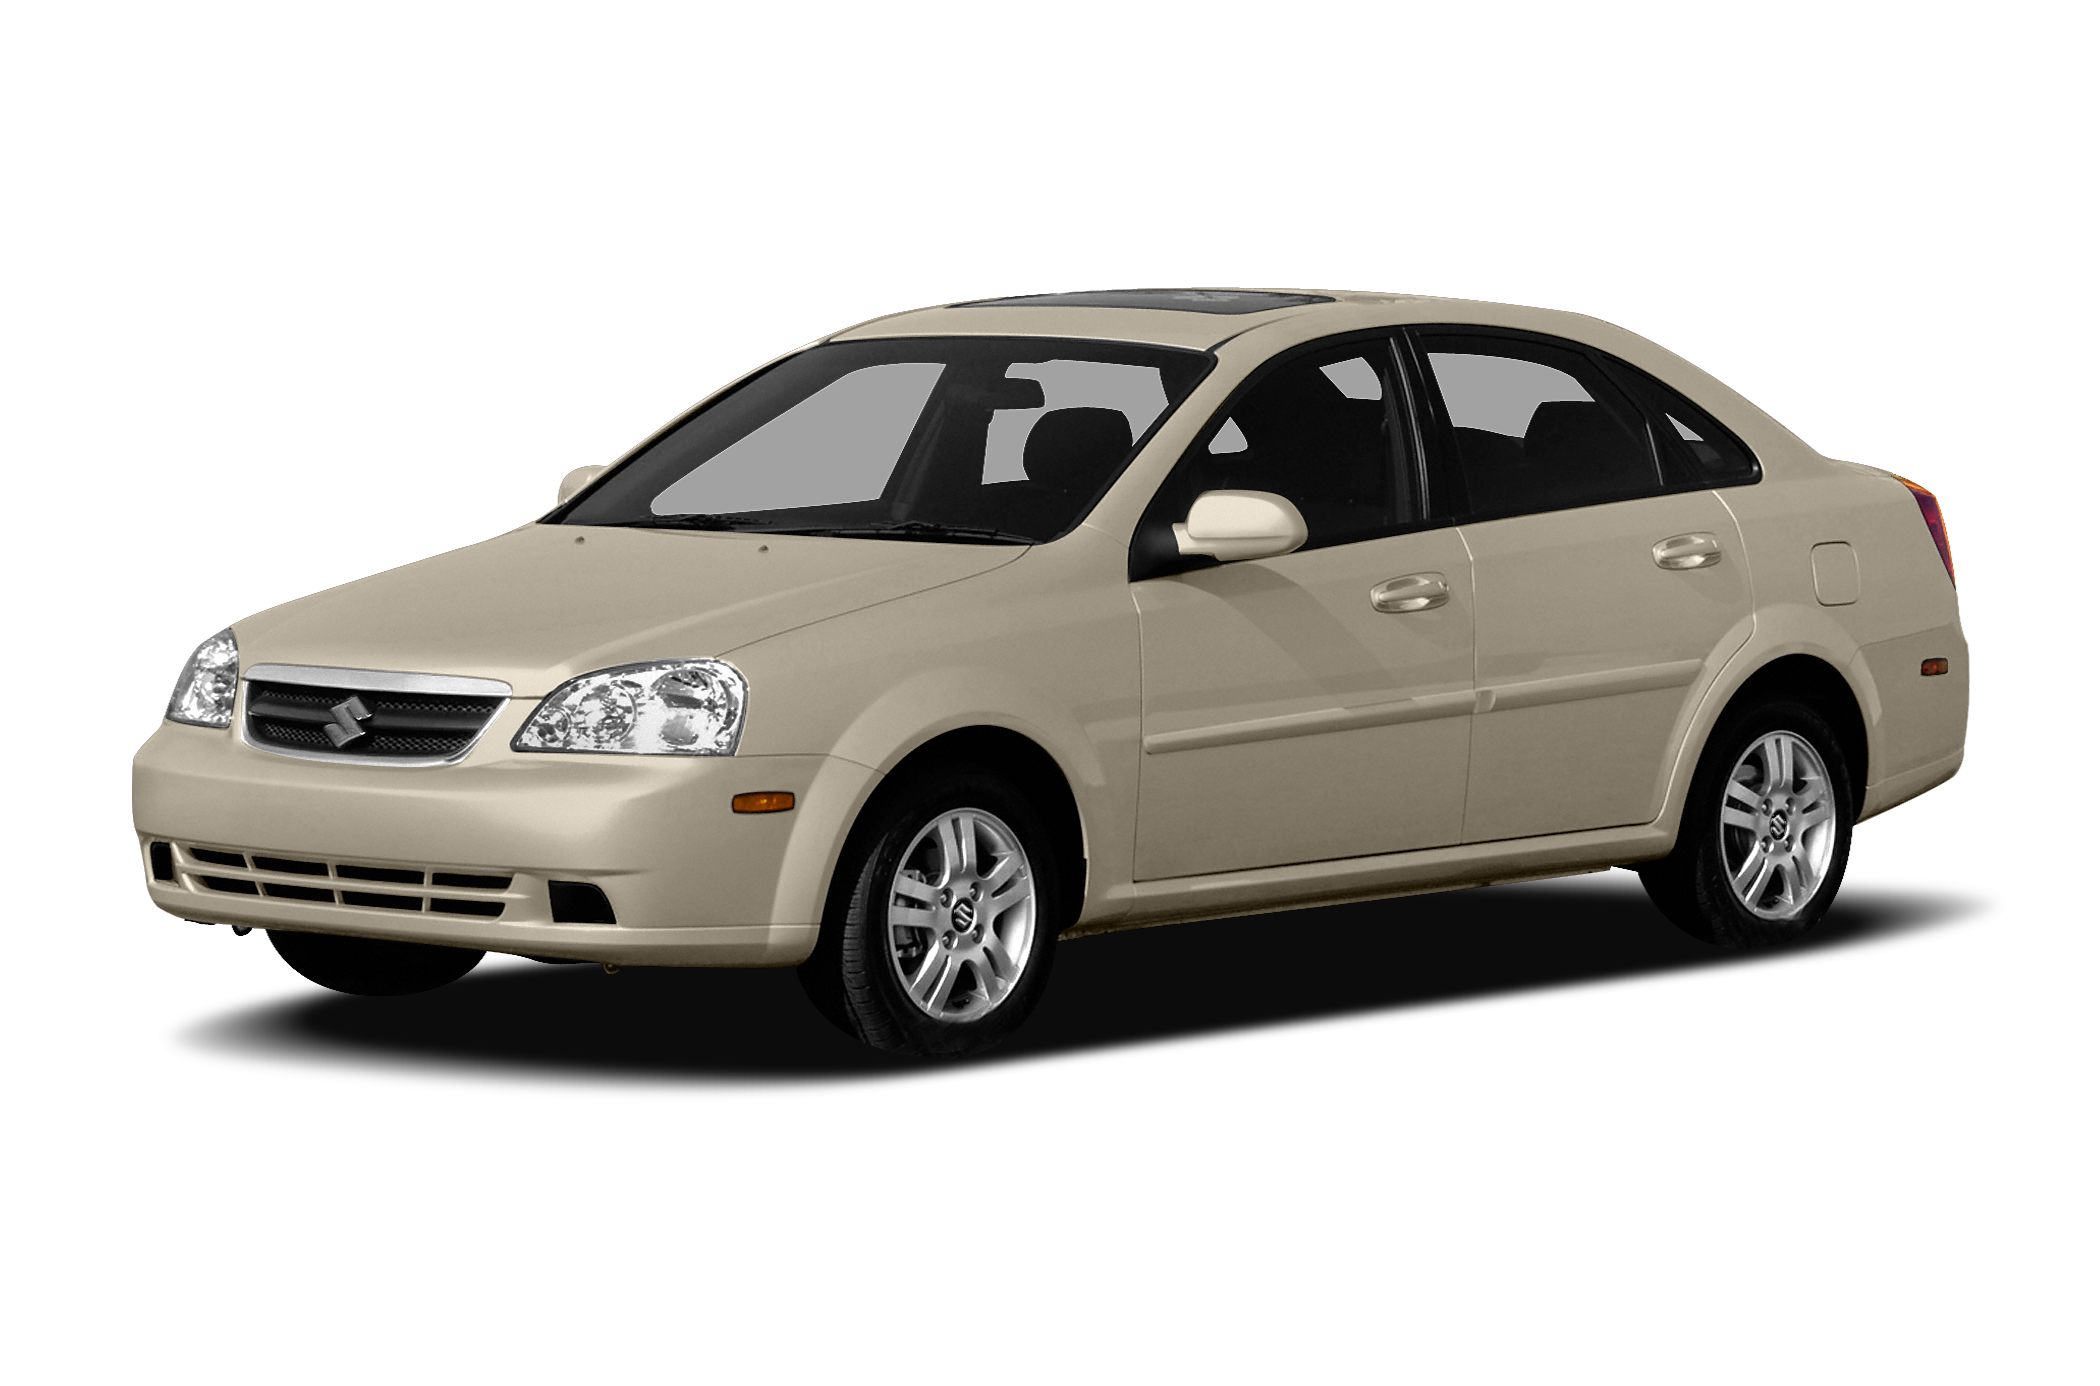 2008 Suzuki Forenza Convenience WE SELL OUR VEHICLES AT WHOLESALE PRICES AND STAND BEHIND OUR CARS